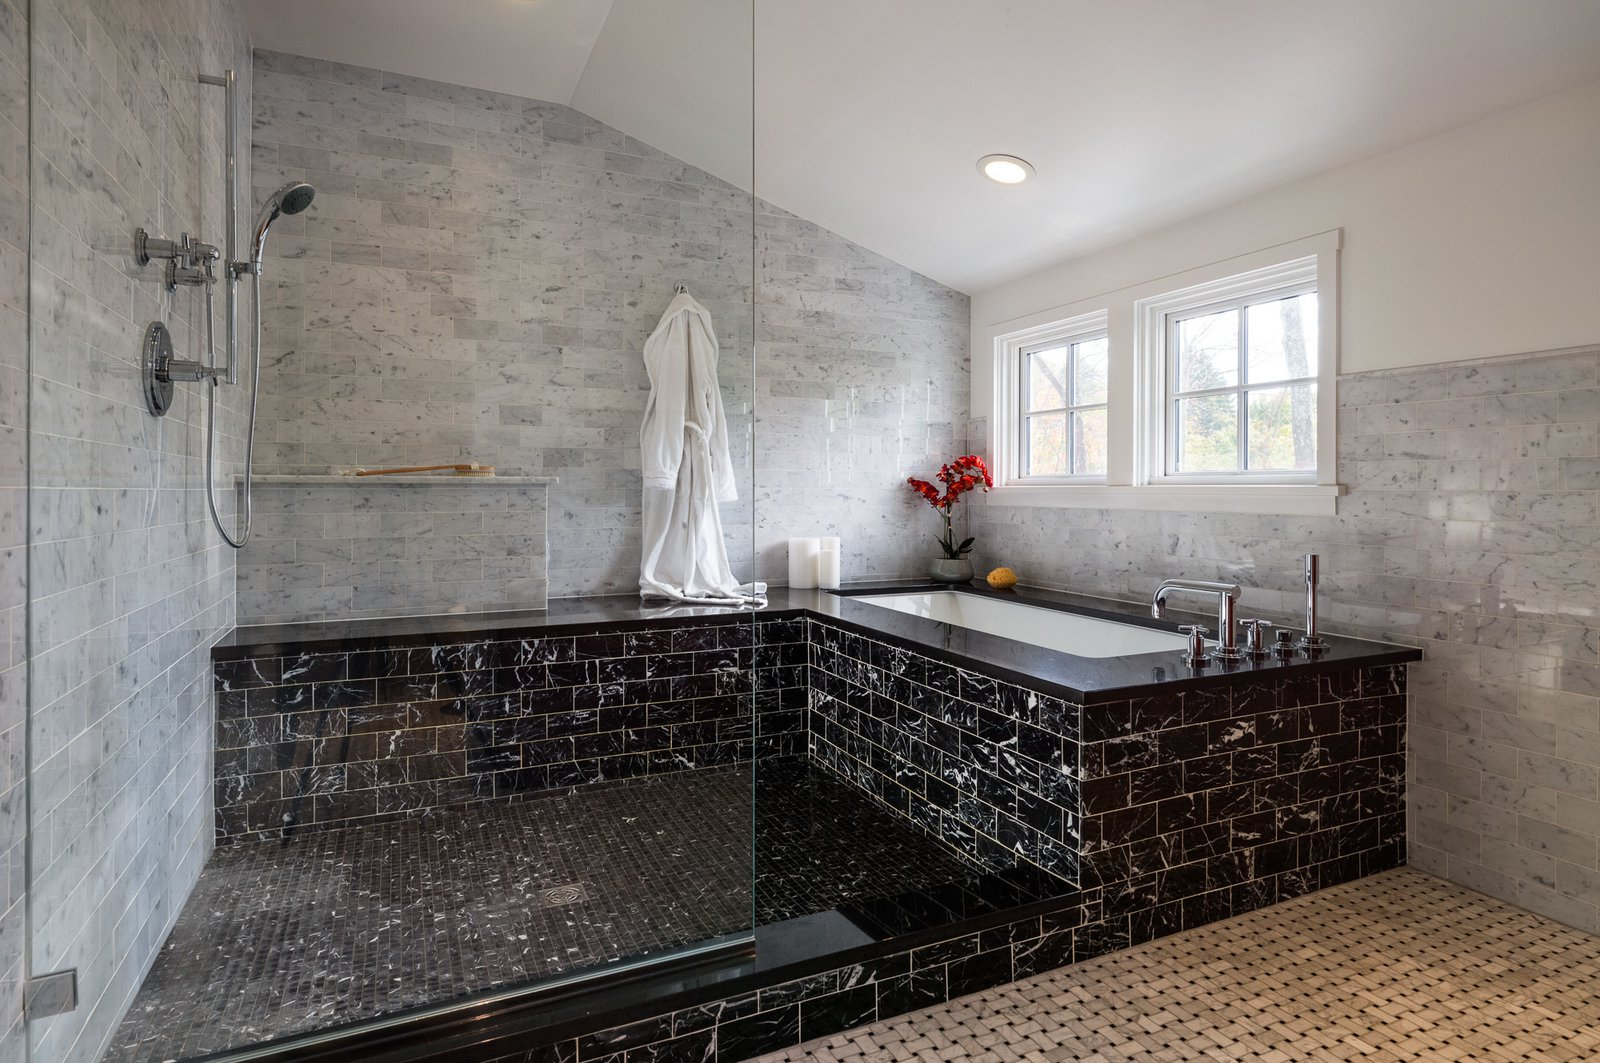 "Marble was used throughout the master bathroom in order to create a timeless feel that would age well. ""The hope is that in 15 years, you won't look at the room and think, 'oh, that tile was only popular in 2015,"" Michael says.  Photo 6 of 8 in A Loving Renovation Updates a Rustic Family Home with Reclaimed Materials"